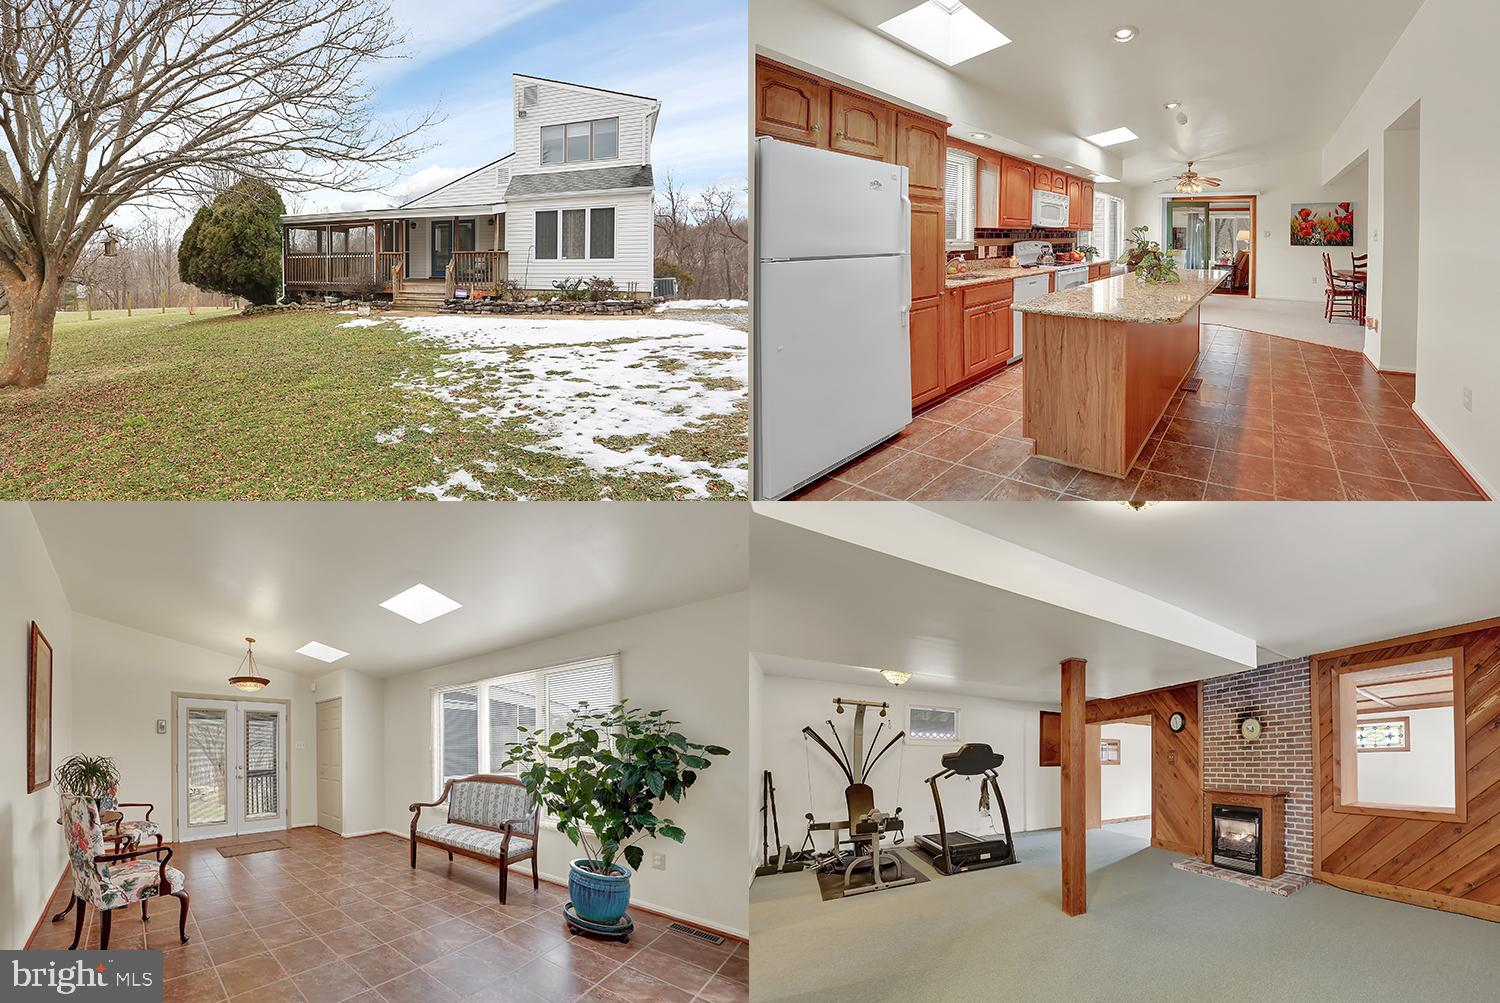 2683 LANDER ROAD, JEFFERSON, MD 21755